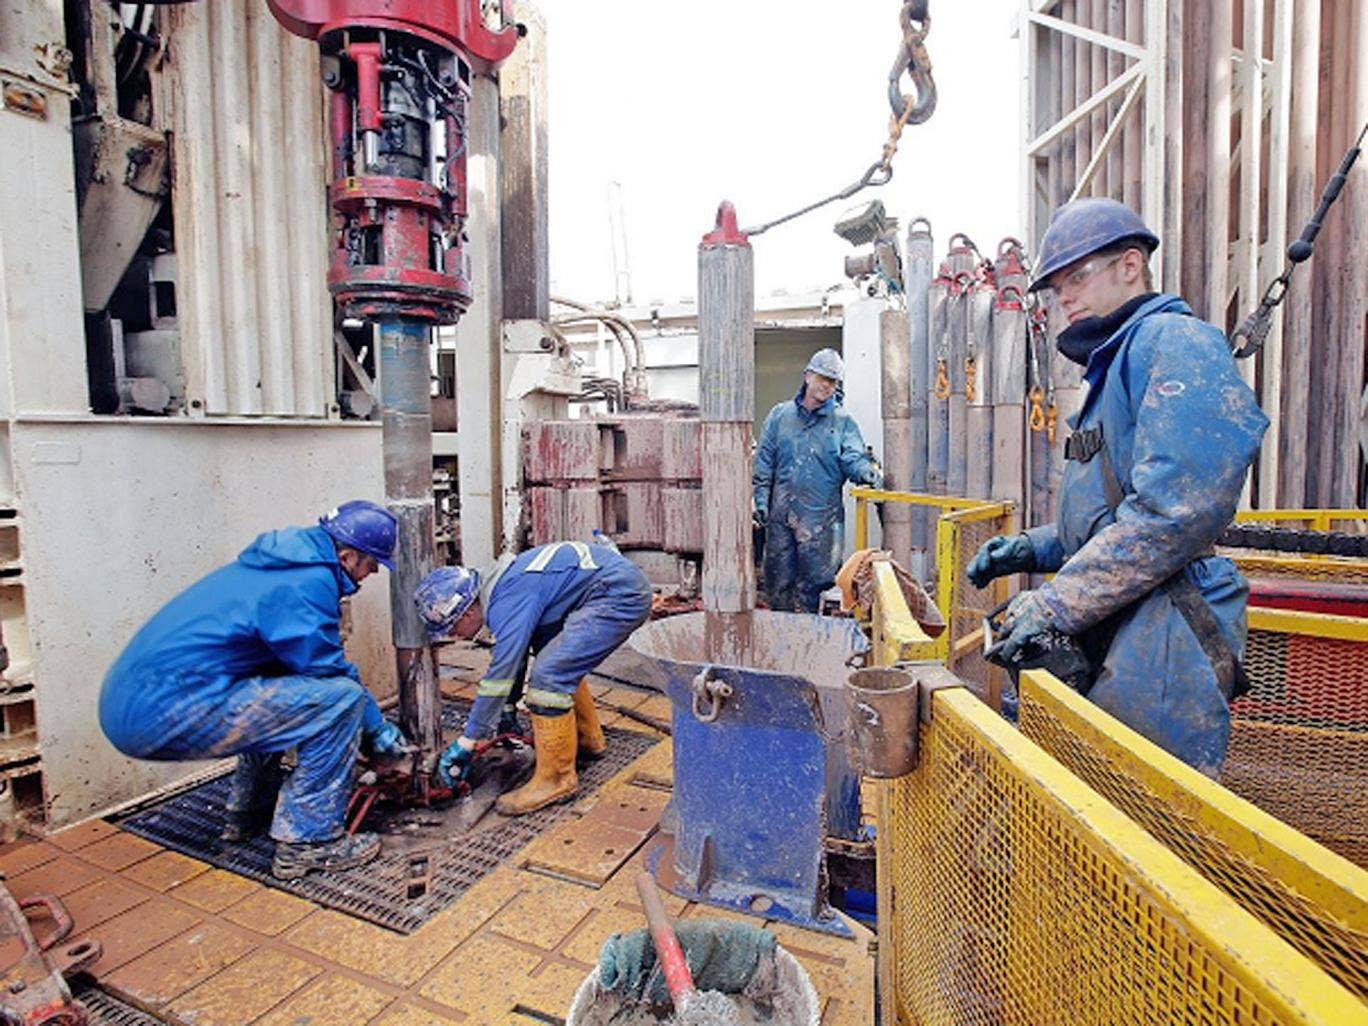 Engineers working on the drilling platform of the Cuadrilla shale fracking facility in Preston, Lancashire